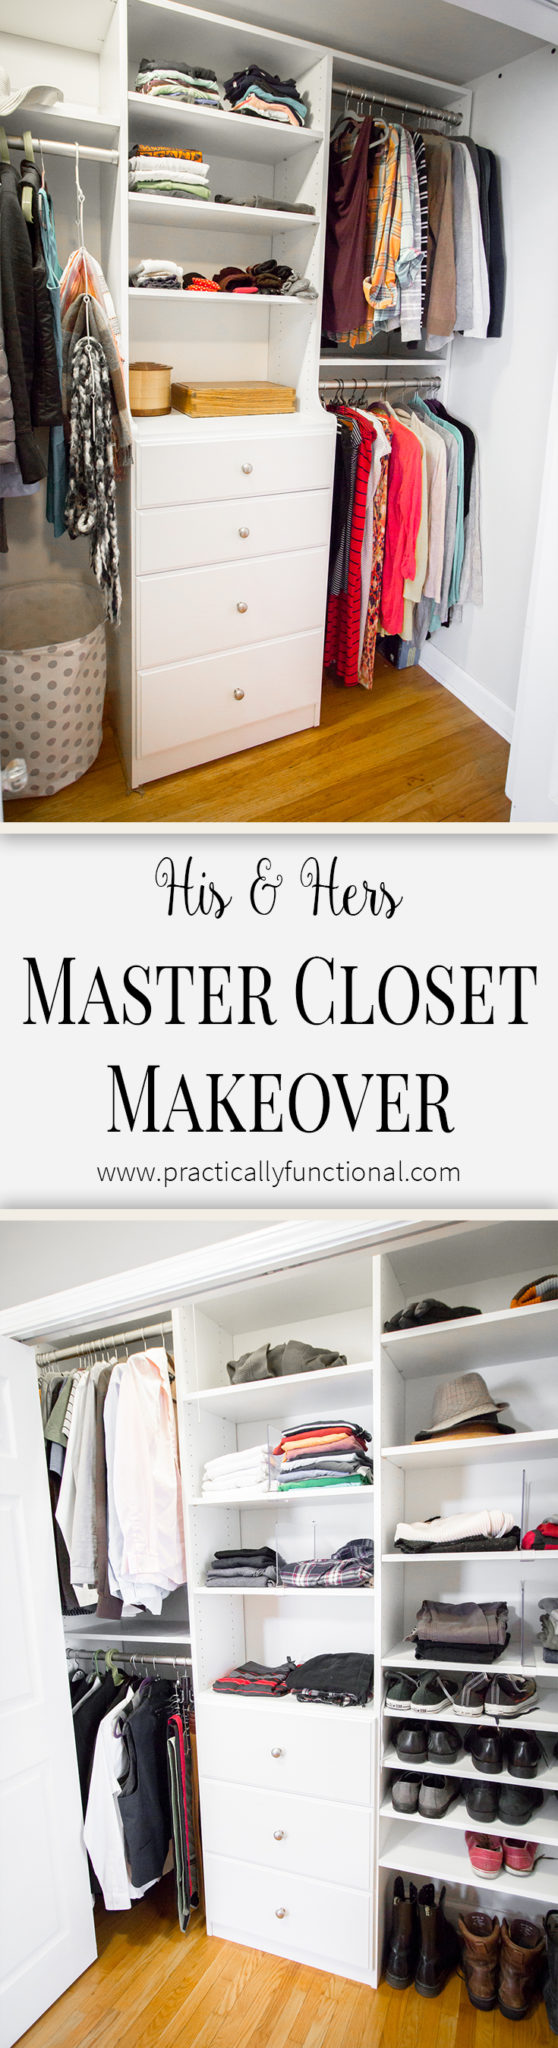 Give your master closet a DIY custom makeover in just one weekend! Easy to design, easy to install!